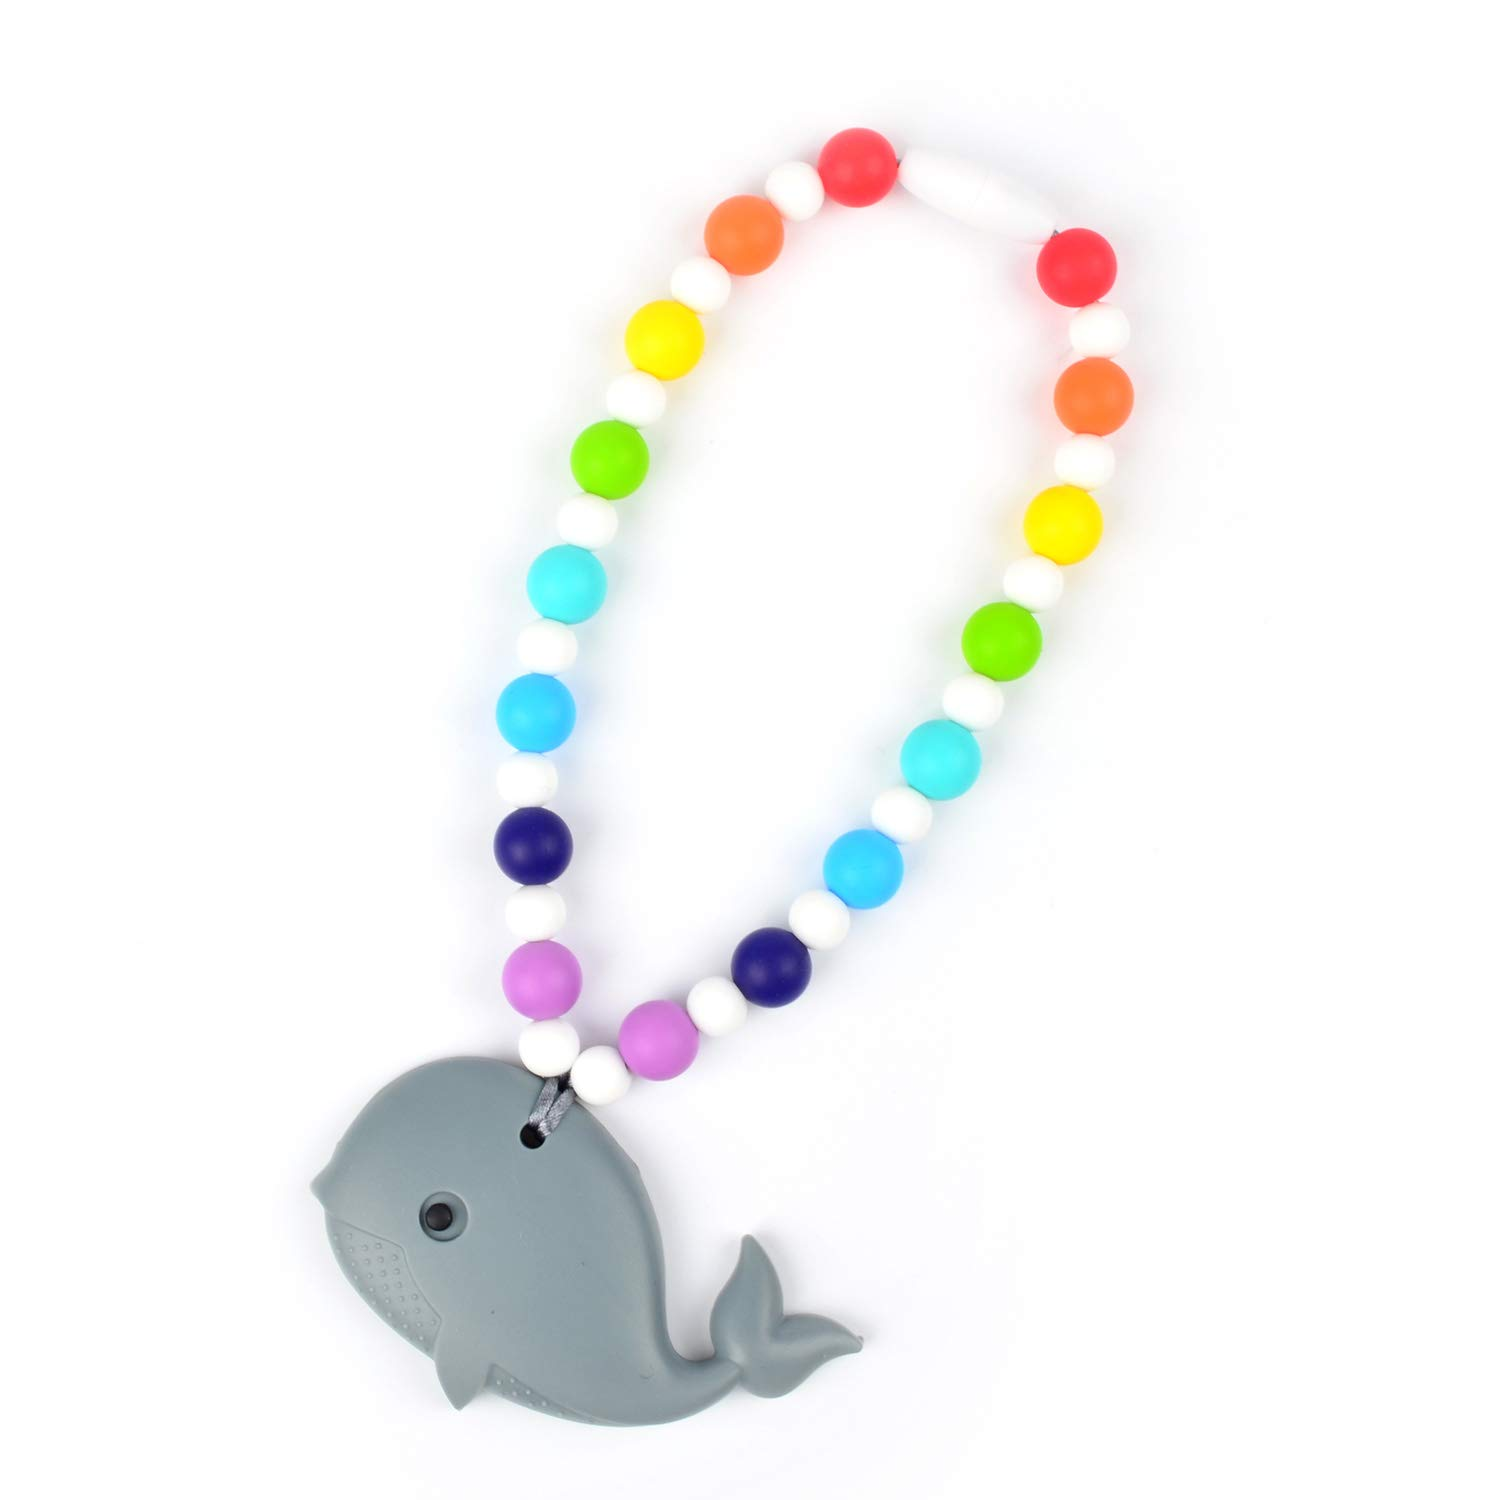 Stroller or Diaper Bag Car Seat Nummy Beads Rainbow Gray Whale Teether Toy Attaches to Baby Carrier High Chair